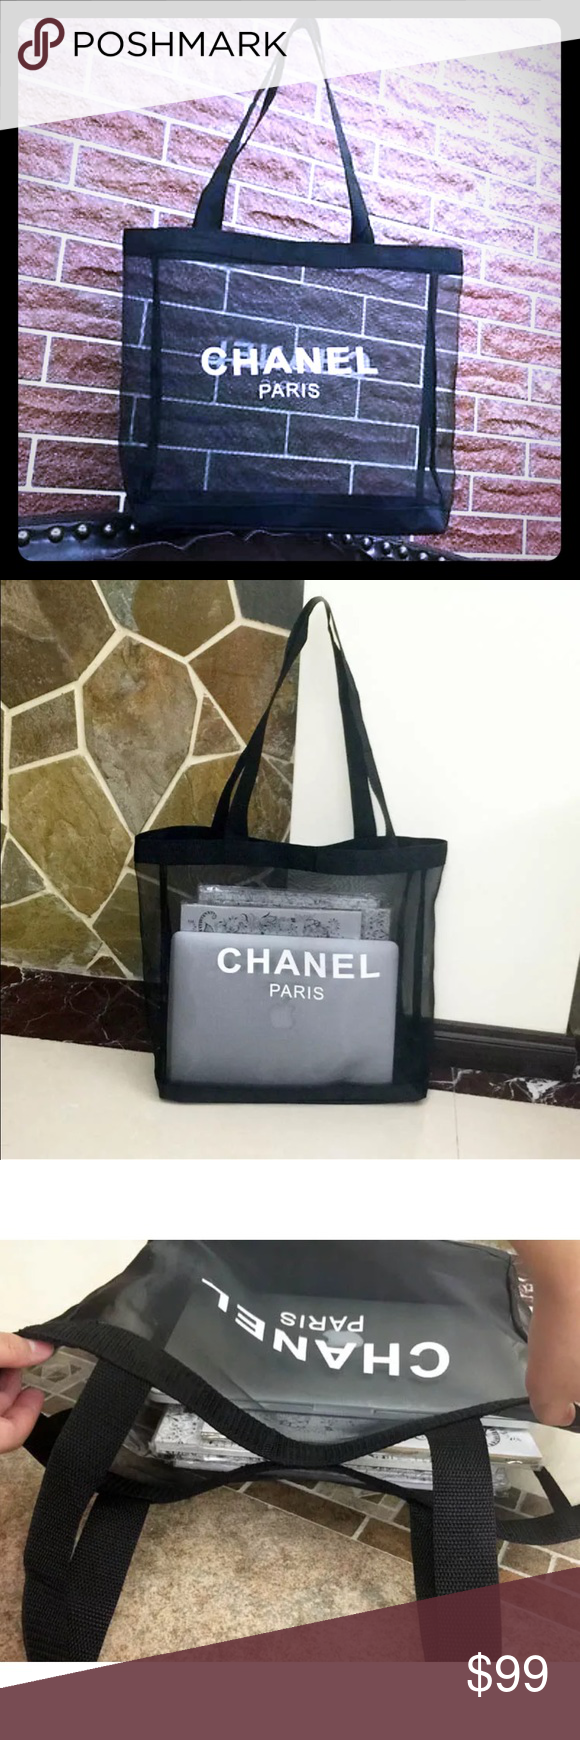 CHANEL VIP GIFT TOTE This Chanel tote has been given to its VIP customers as a gift. Never worn but comes with no tags. Perfect to store make up, as a beach bag or a shopping tote. CHANEL Bags Totes